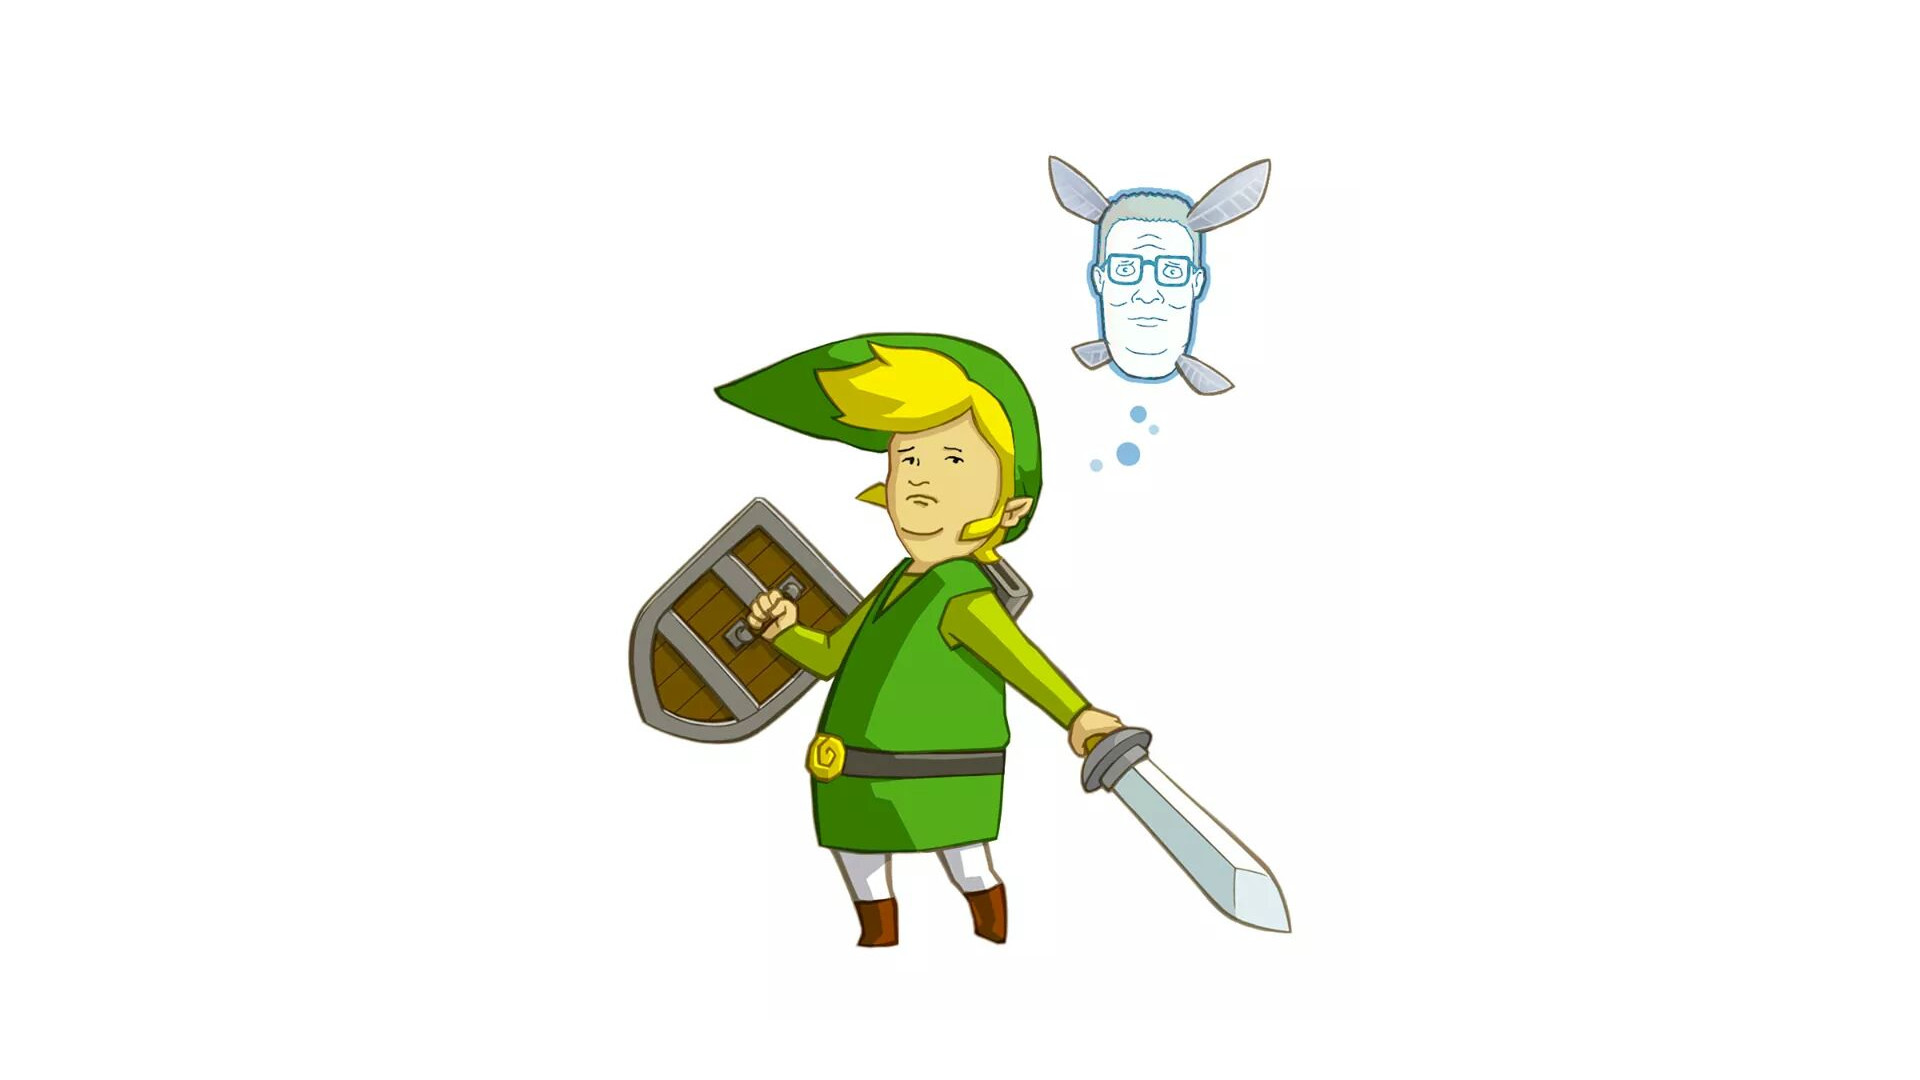 1920x1080 General  crossover humor King of the Hill The Legend of Zelda